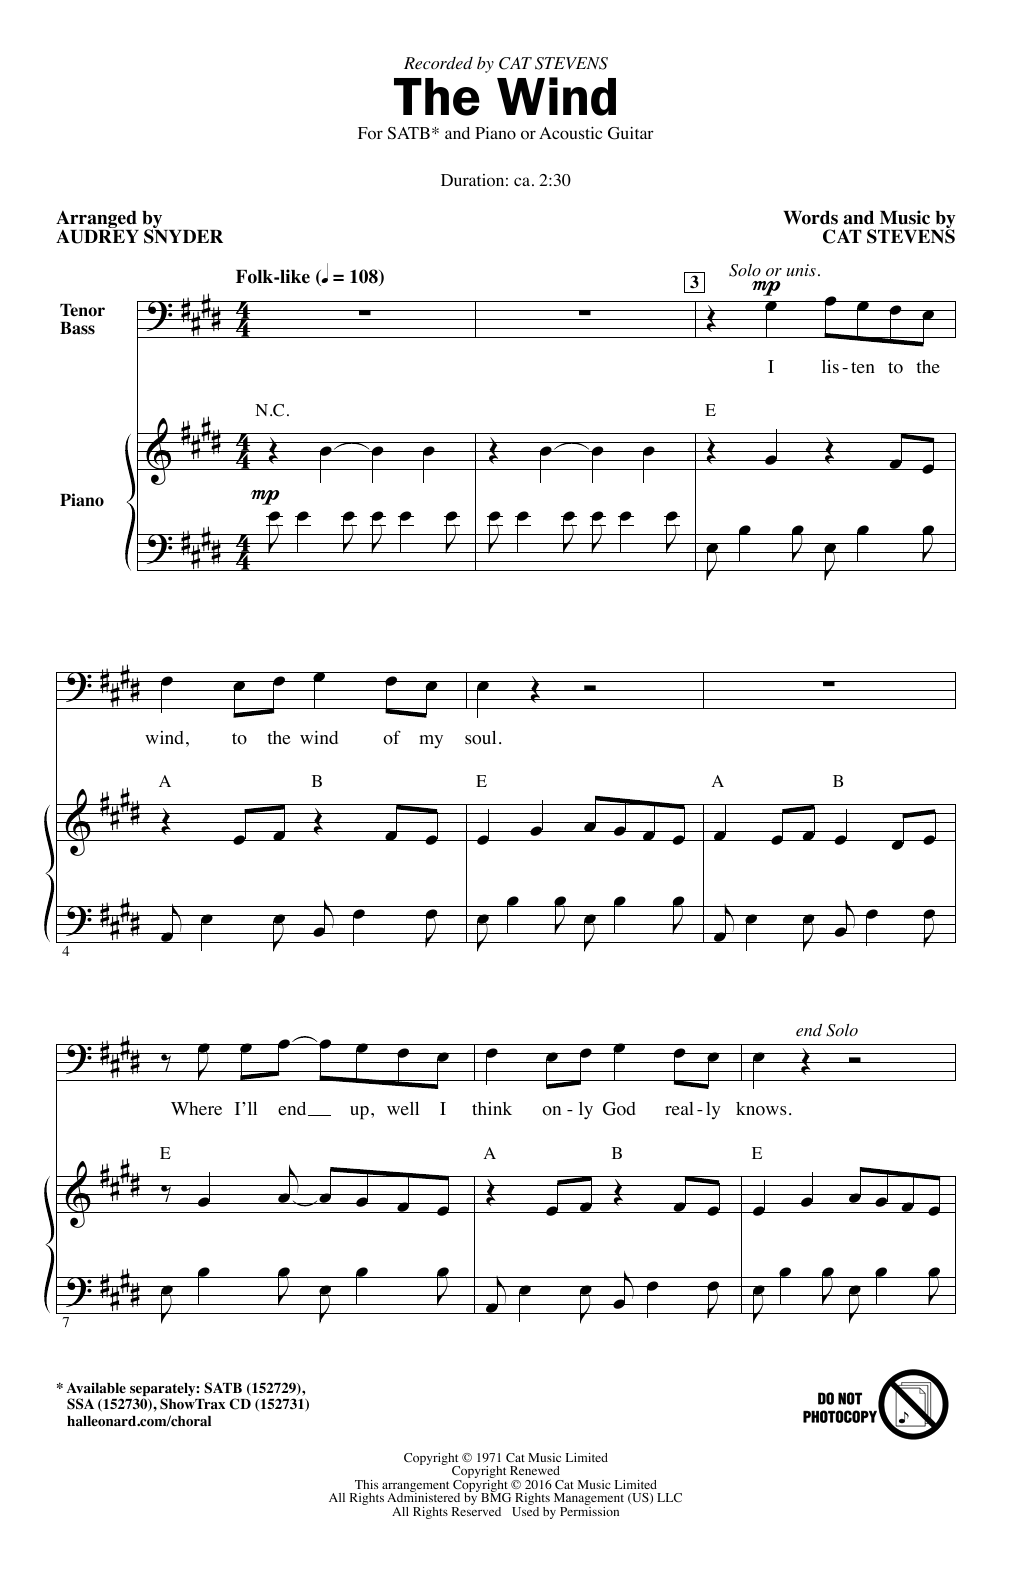 Cat Stevens The Wind (arr. Audrey Snyder) sheet music notes and chords. Download Printable PDF.